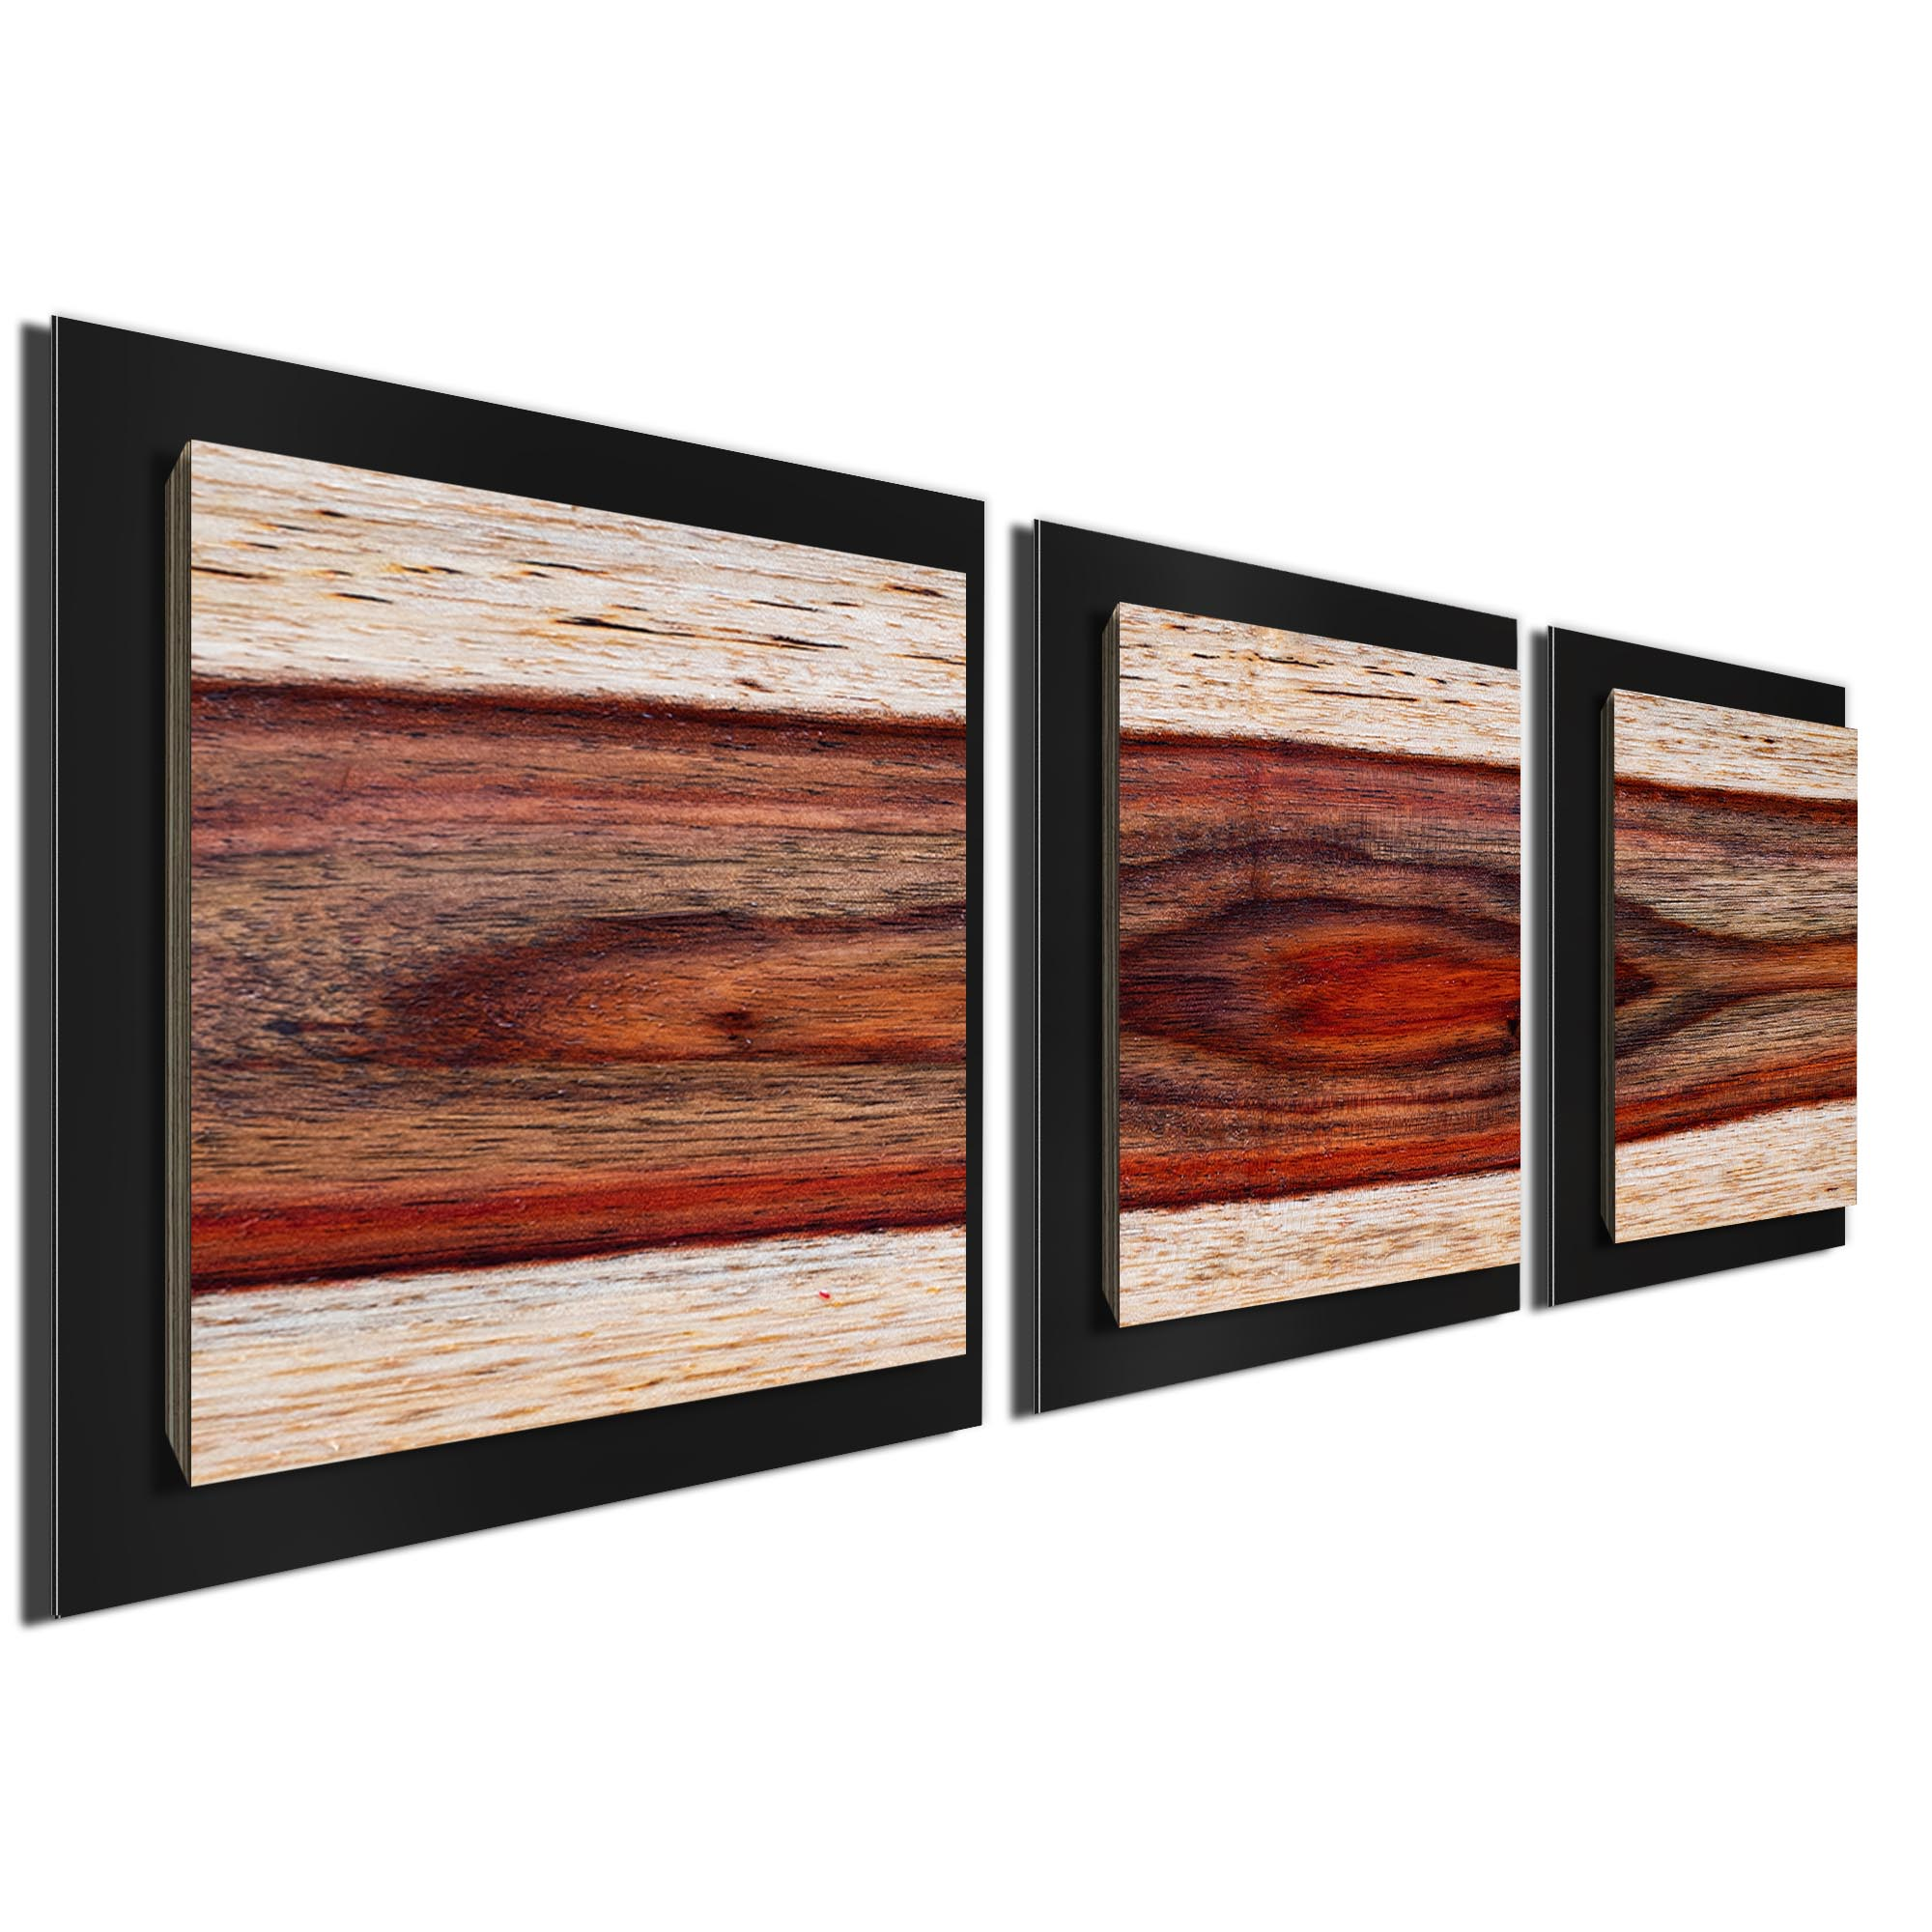 Auburn Wood Essence Black by Adam Schwoeppe Rustic Modern Style Wood Wall Art - Image 2